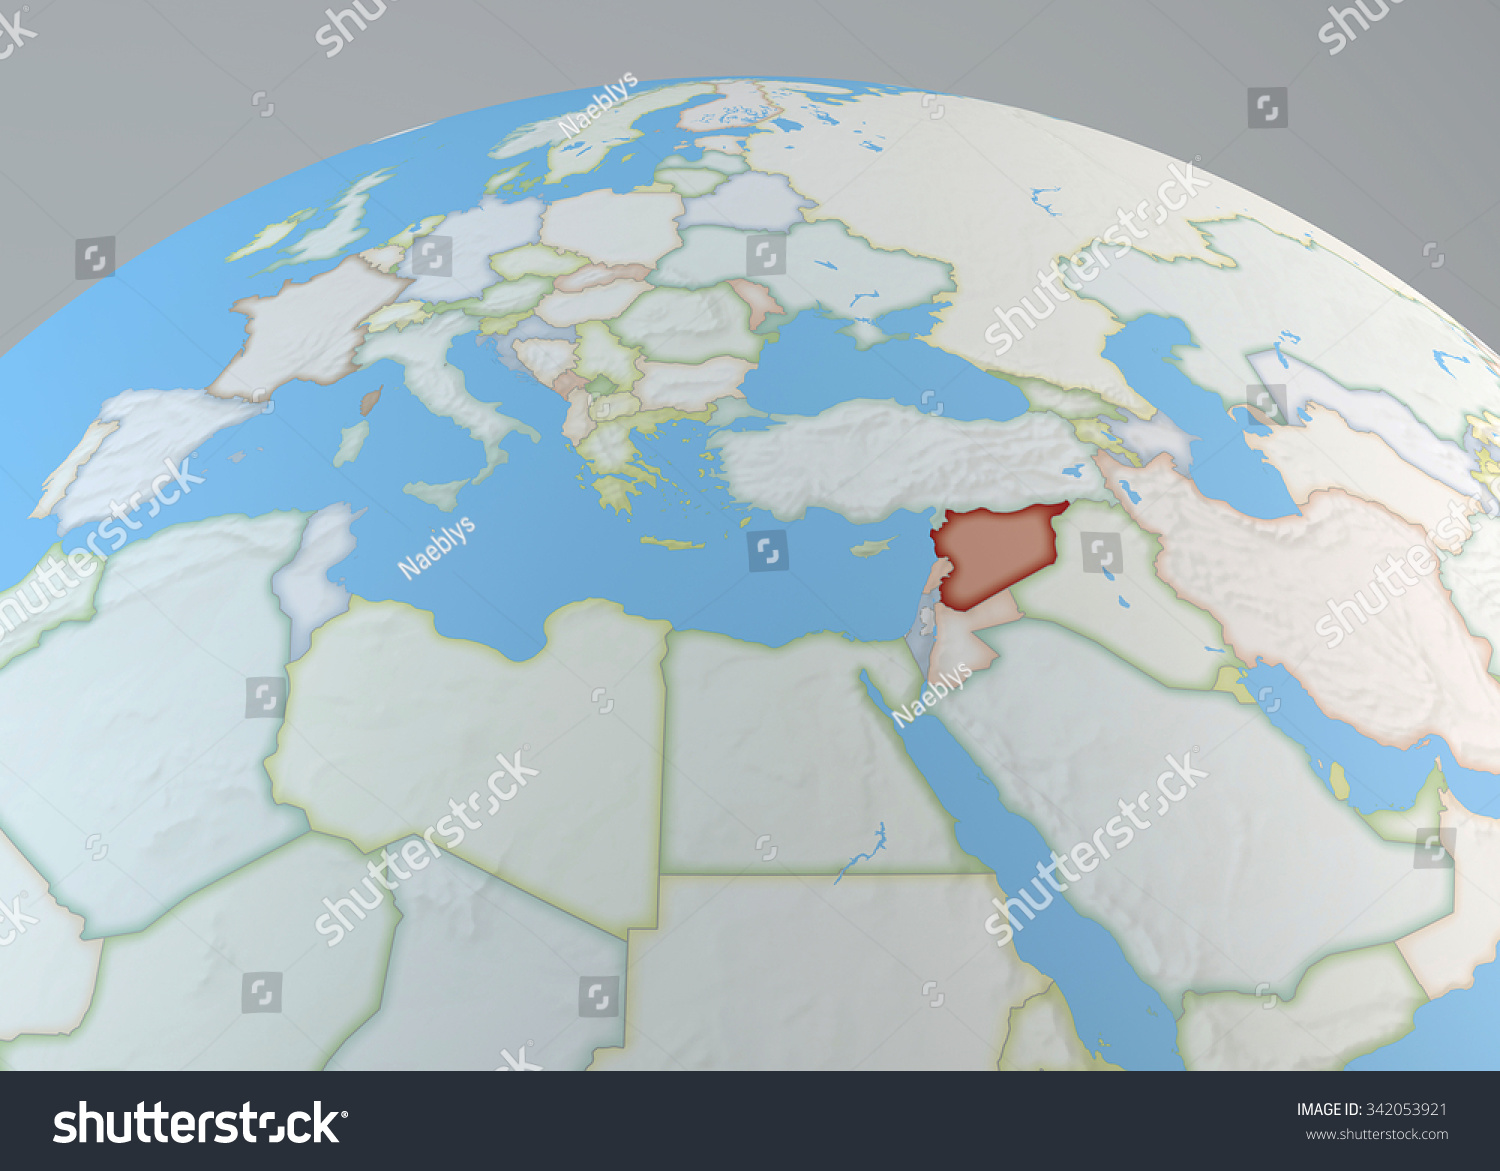 World map middle east syria highlighted stock illustration 342053921 world map of middle east with syria highlighted north africa and europe gumiabroncs Images